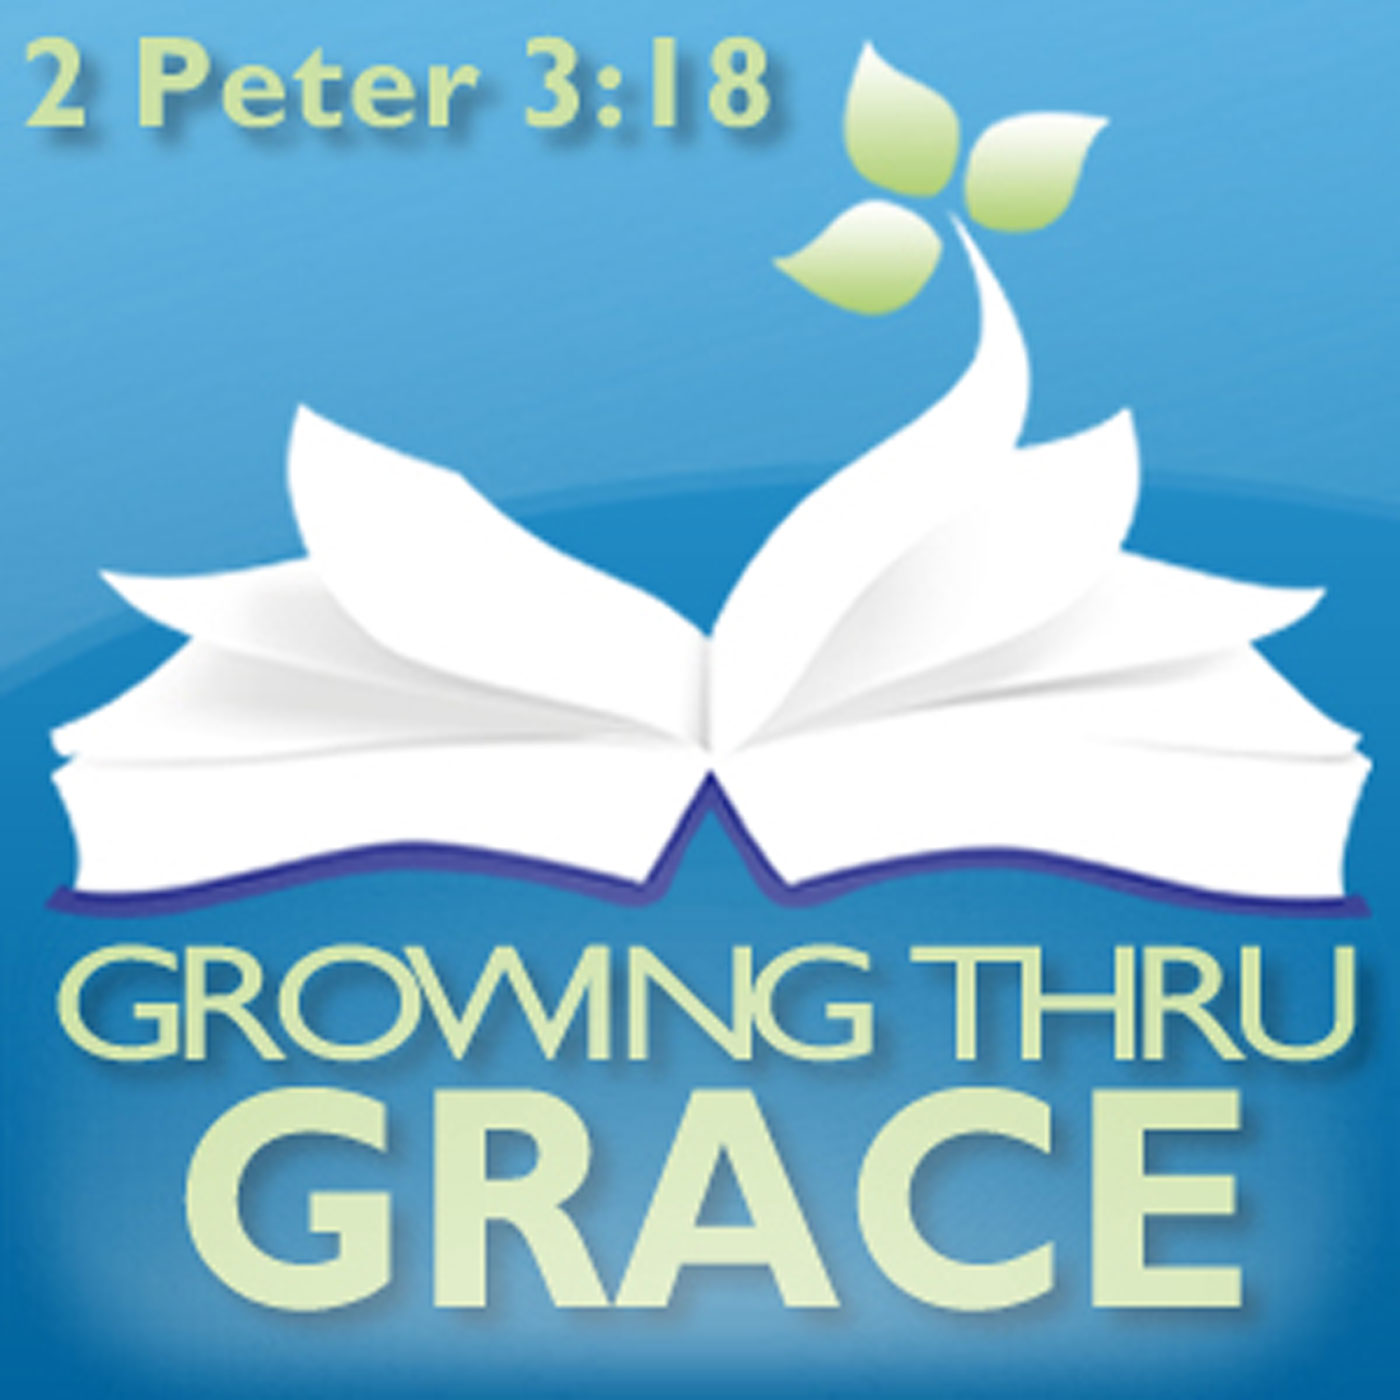 Growing Thru Grace - Daily Radio Broadcast